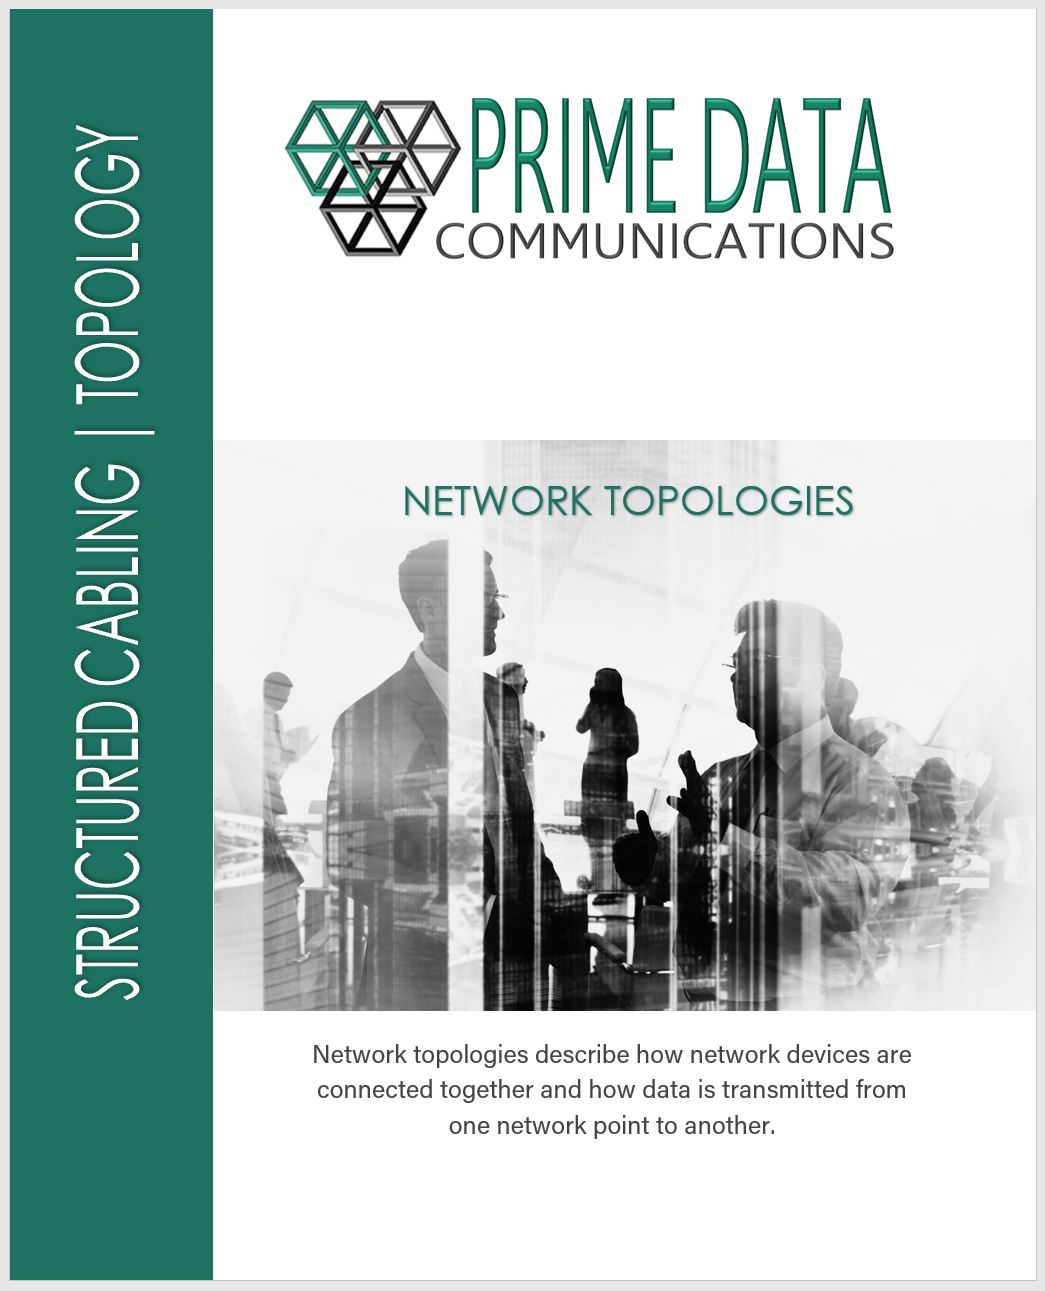 Prime Data Communications - Structured Network Topology - 2019.JPG